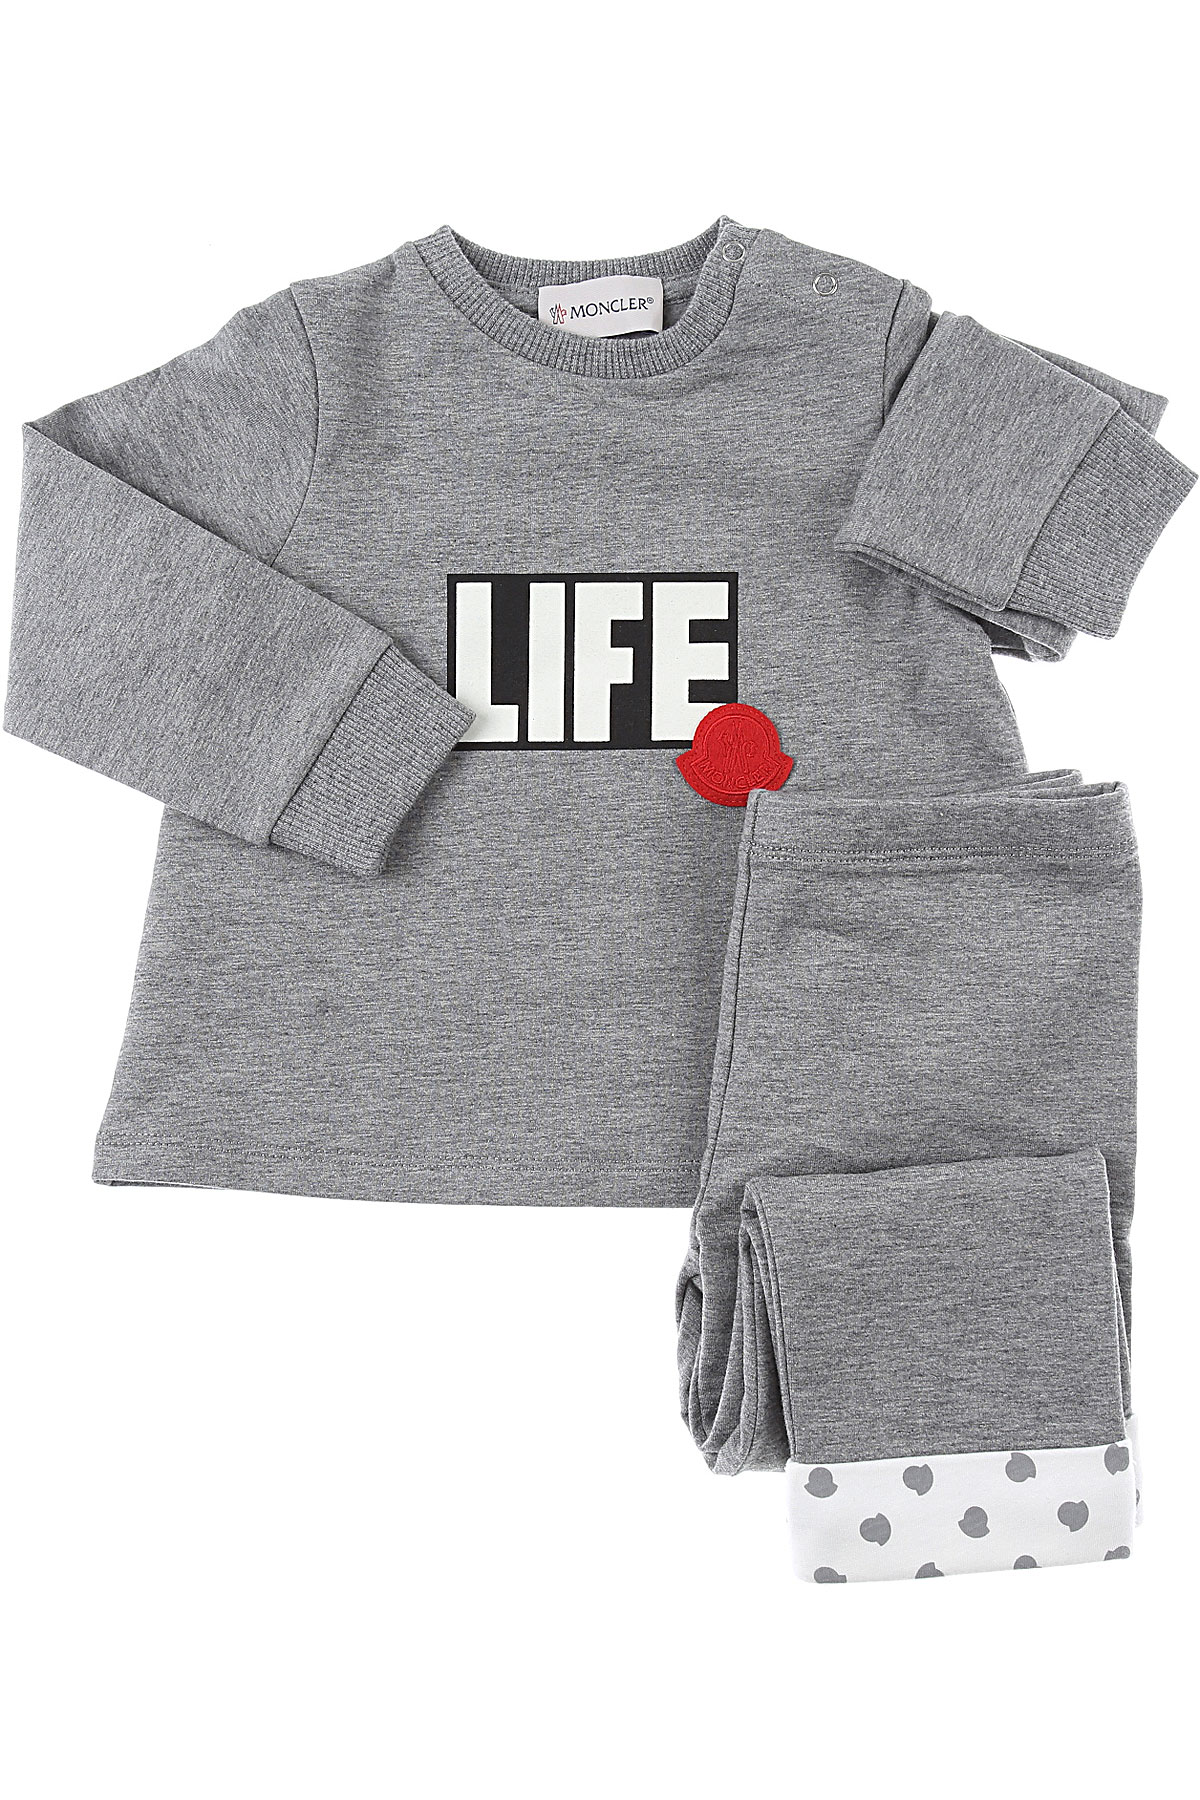 Moncler Baby Sets for Girls On Sale, Grey, Cotton, 2019, 12M 18M 2Y 3Y 6M